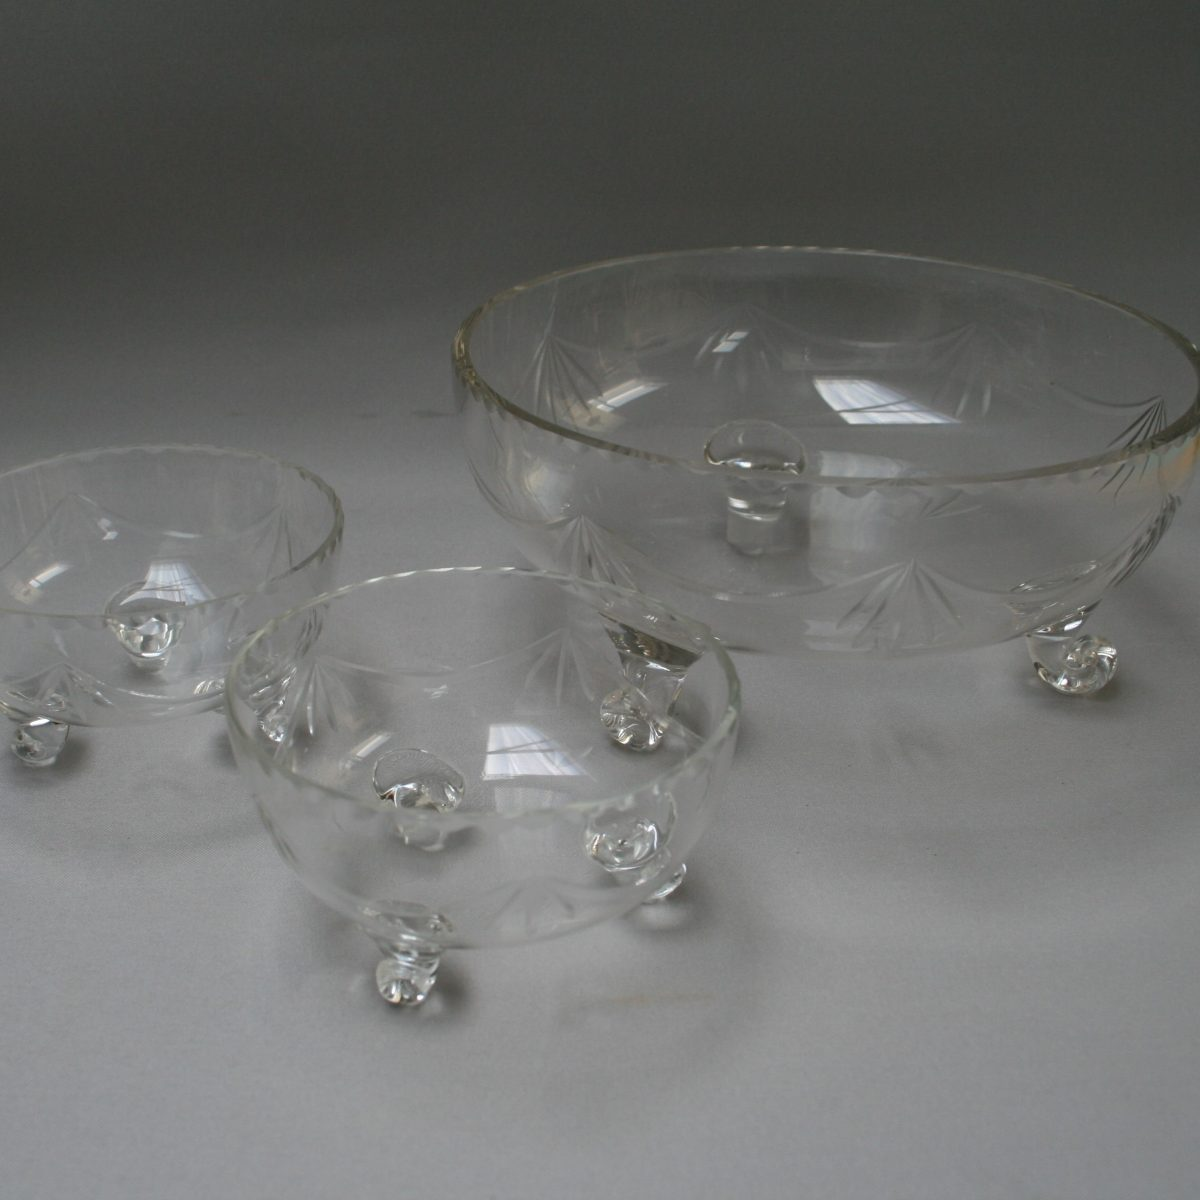 glass serving dish with 2 matching dessert bowls/williamsantiques